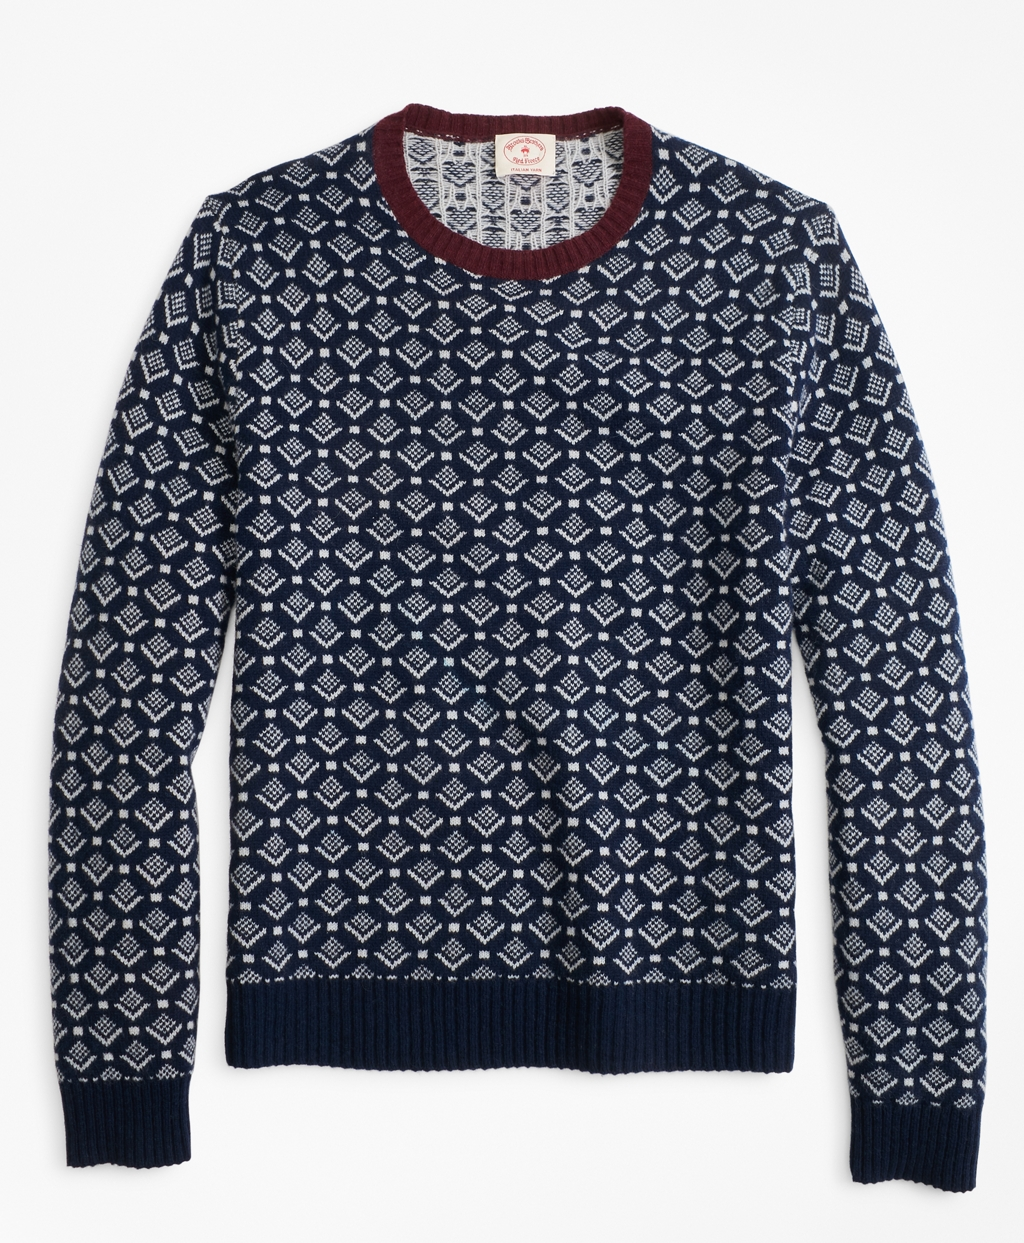 Men's Vintage Style Clothing Brooks Brothers Mens Geometric-Print Wool Sweater $118.00 AT vintagedancer.com